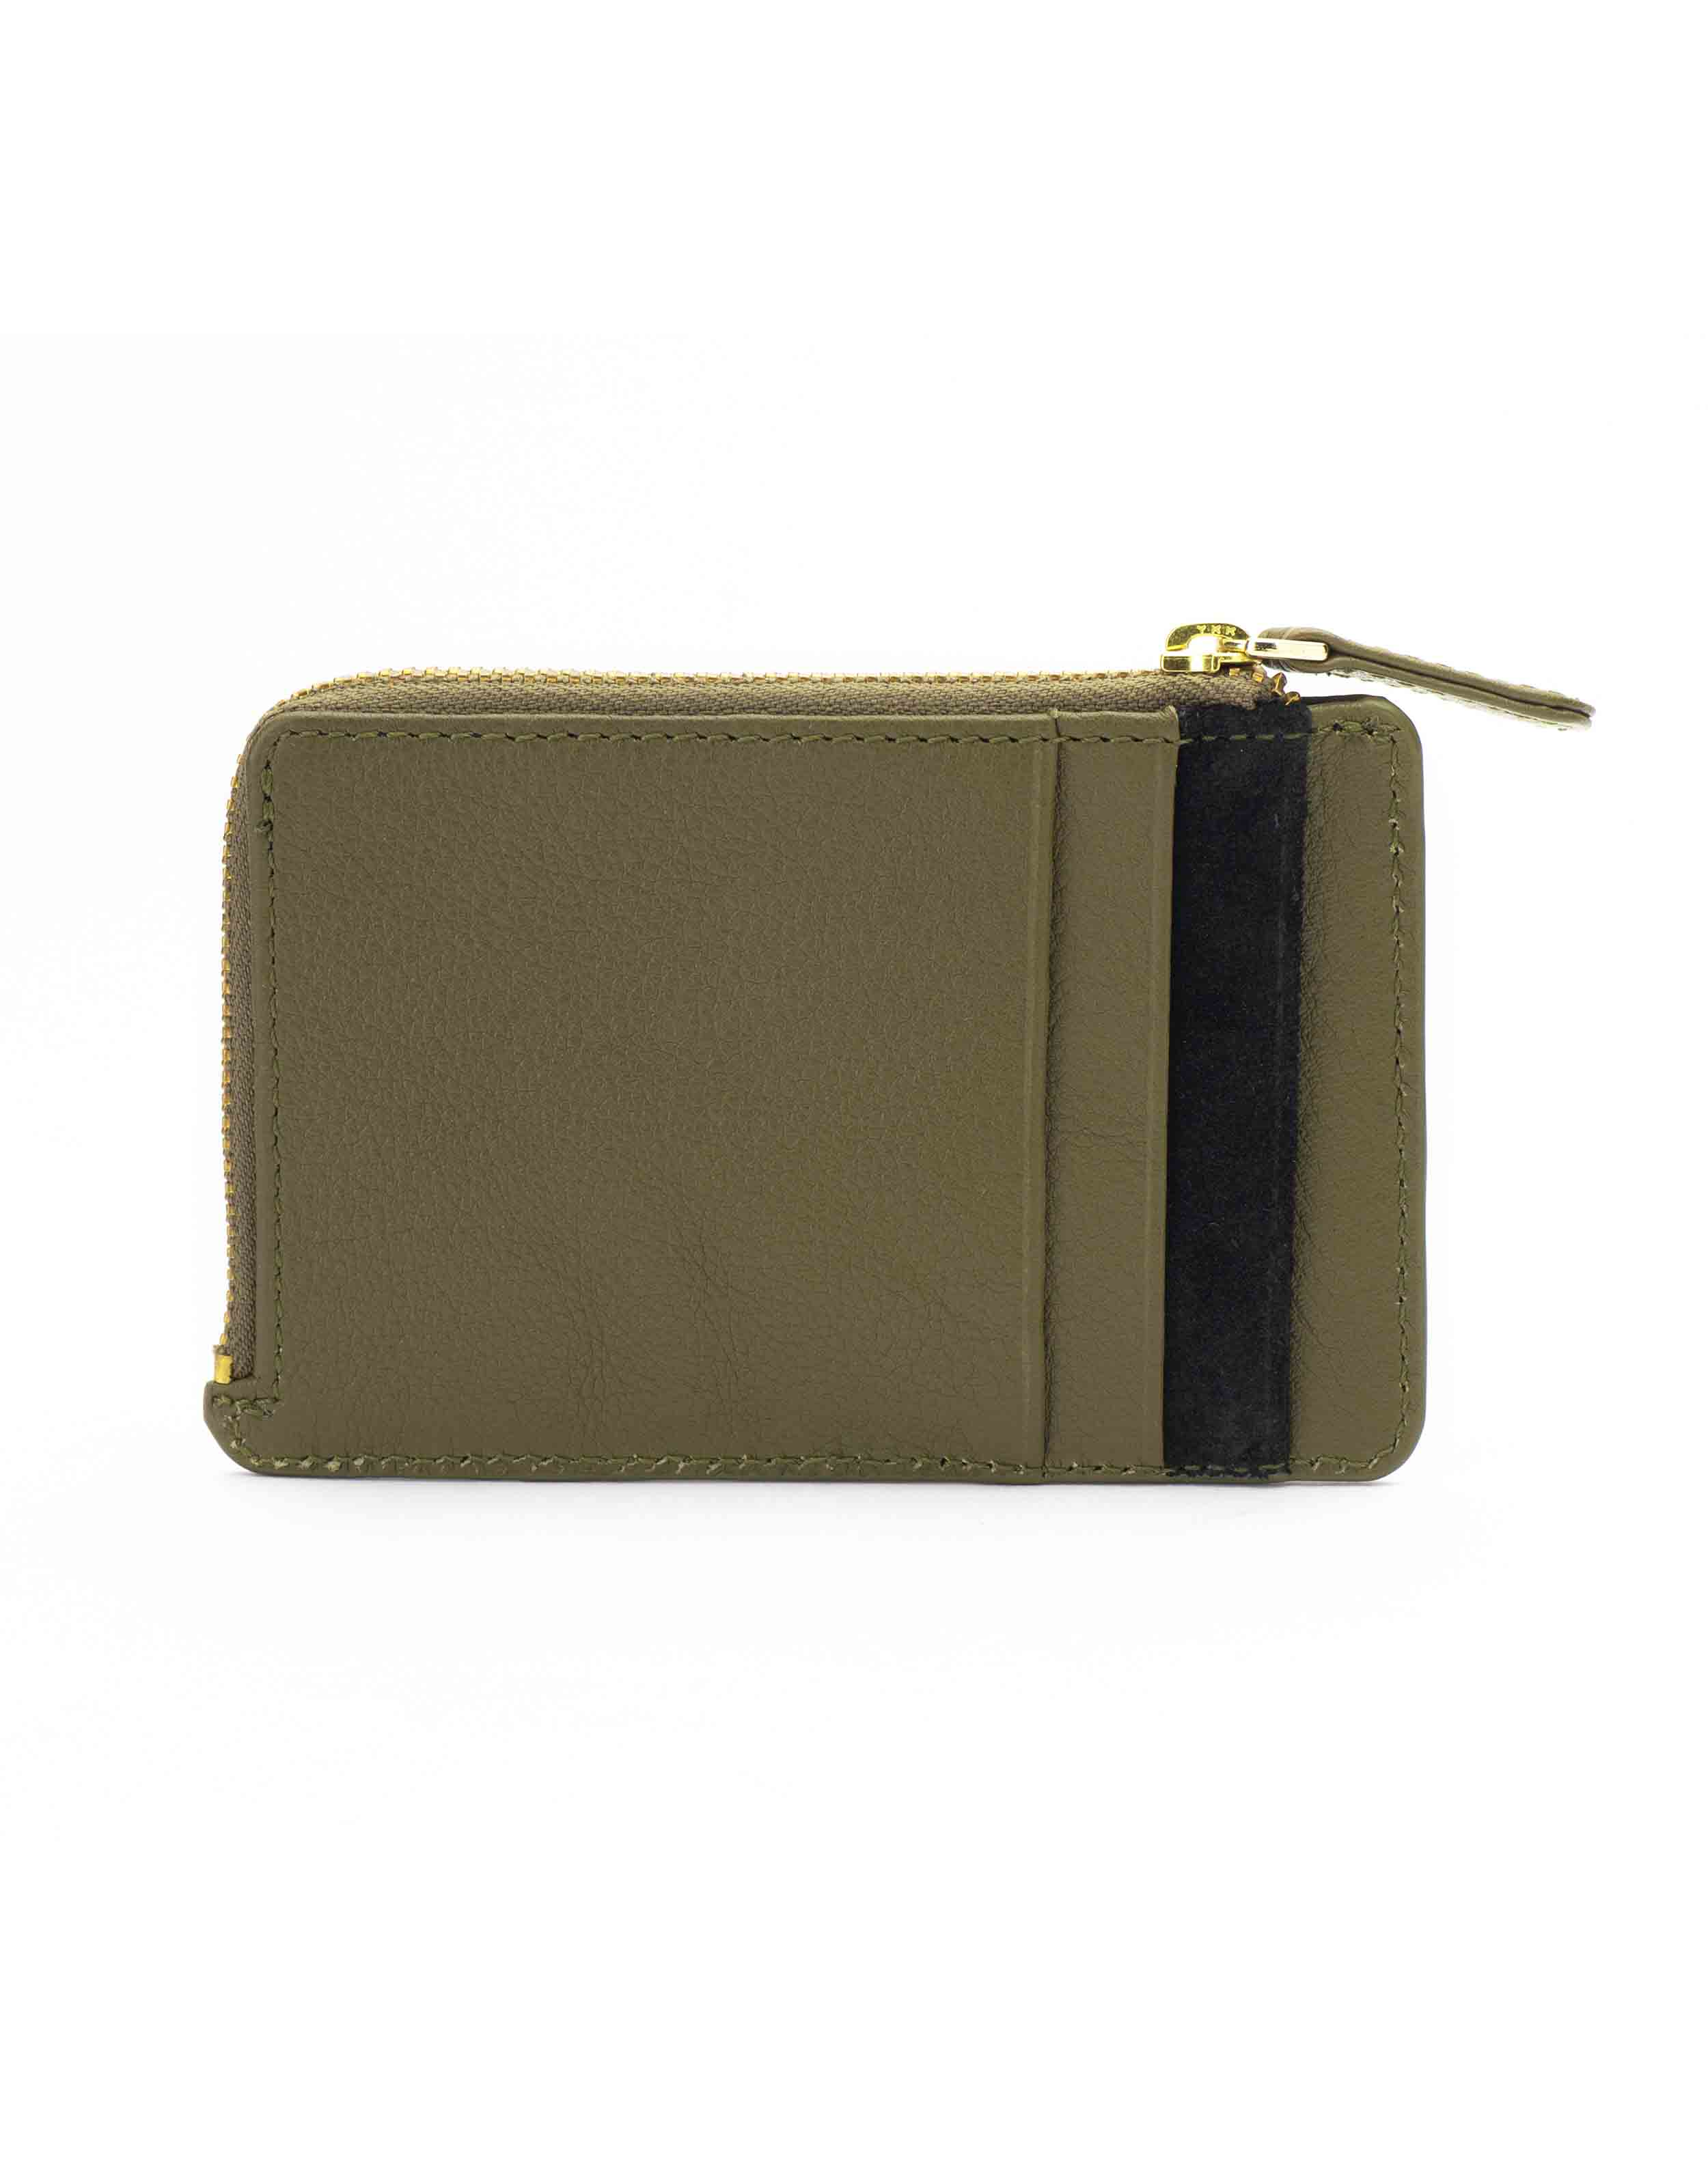 Olive and Black Card Holder2